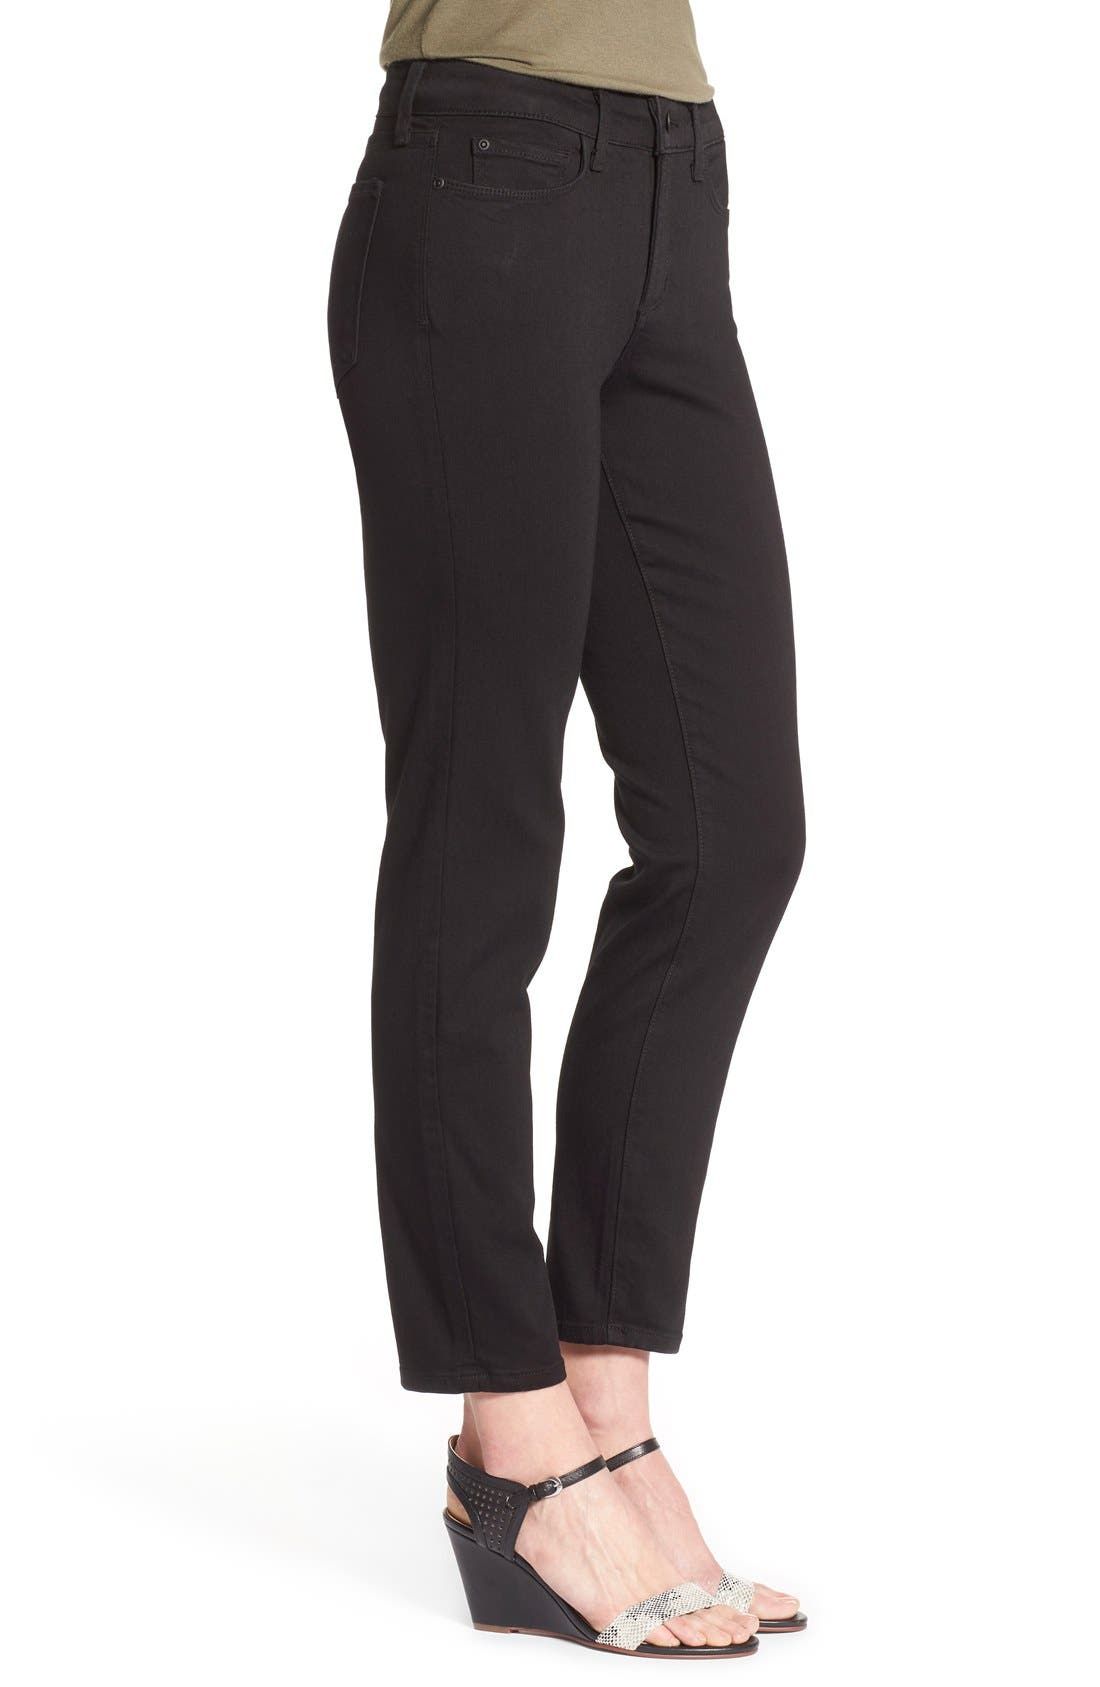 'Clarissa' Stretch Ankle Skinny Jeans,                             Alternate thumbnail 2, color,                             015